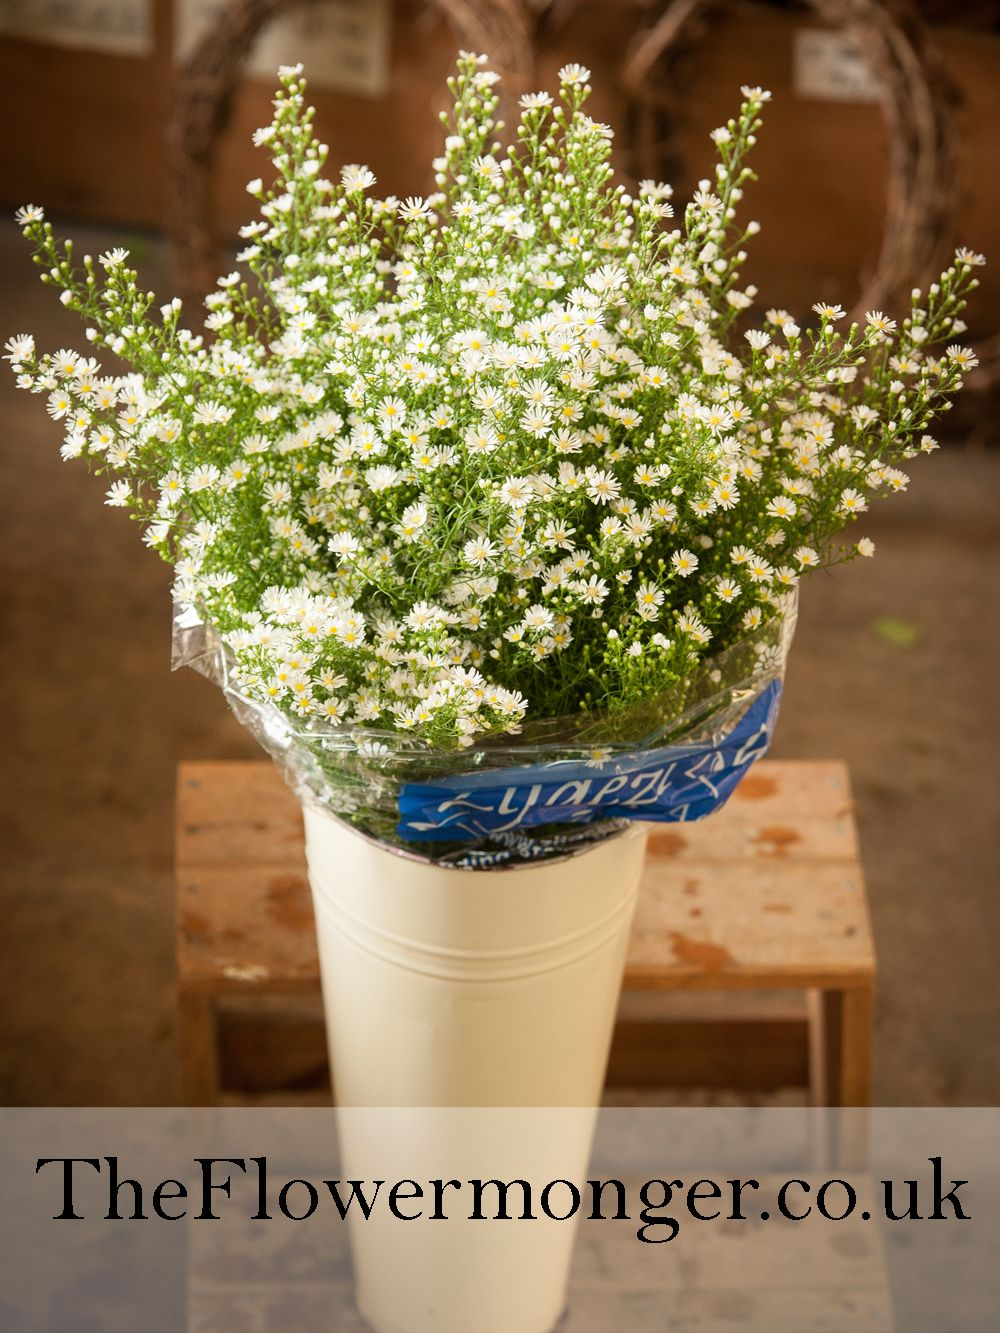 White september flower available in bunches of 5 stems from the white september flower available in bunches of 5 stems from the flowermonger the wholesale mightylinksfo